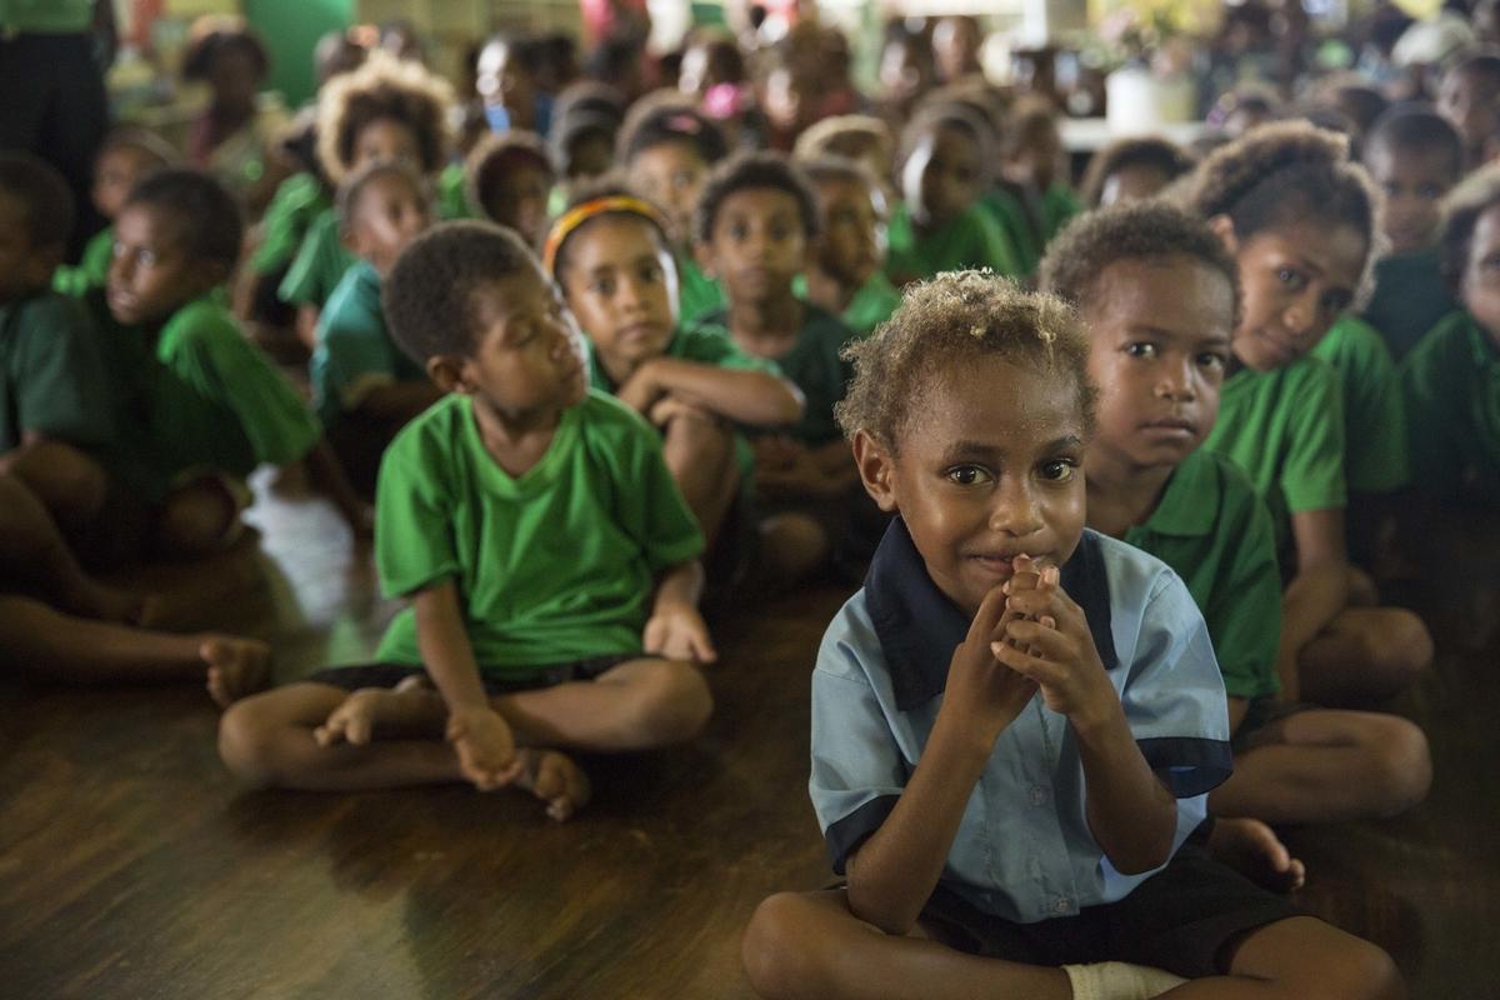 It takes you and me to end physical violence Papua New Guinea children